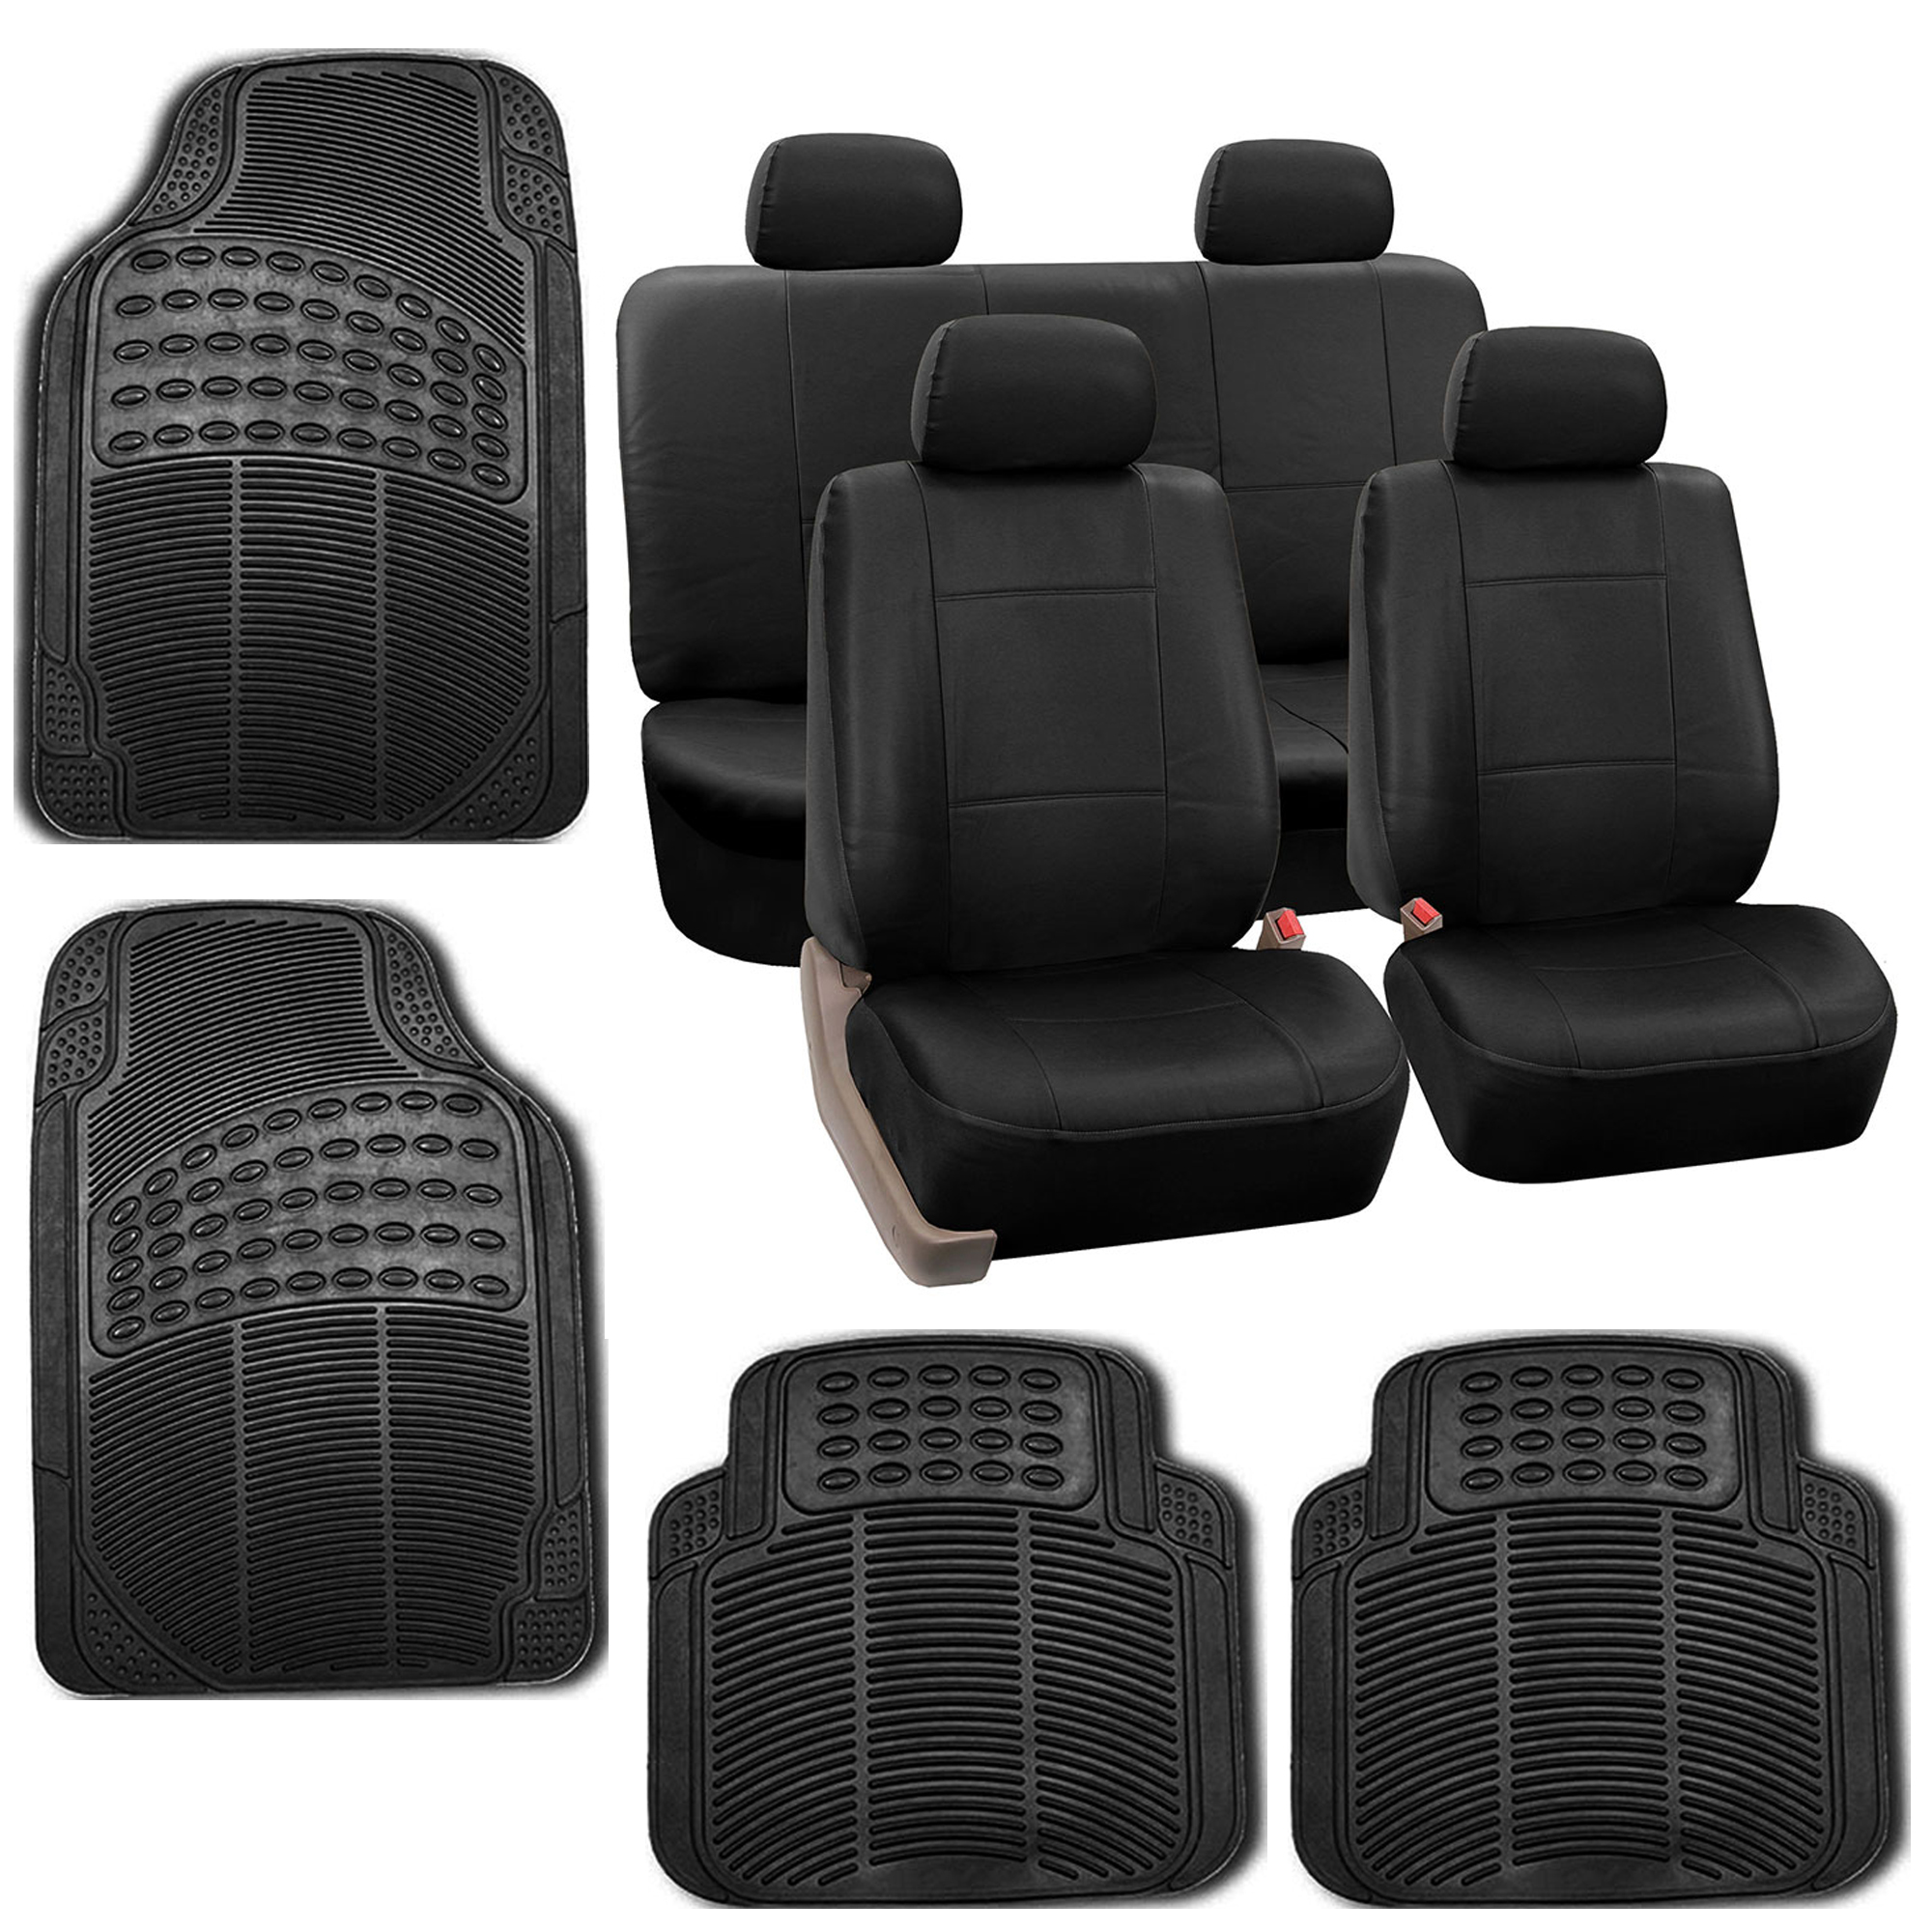 black faux leather car seat cover set headrests floor mat set ebay. Black Bedroom Furniture Sets. Home Design Ideas